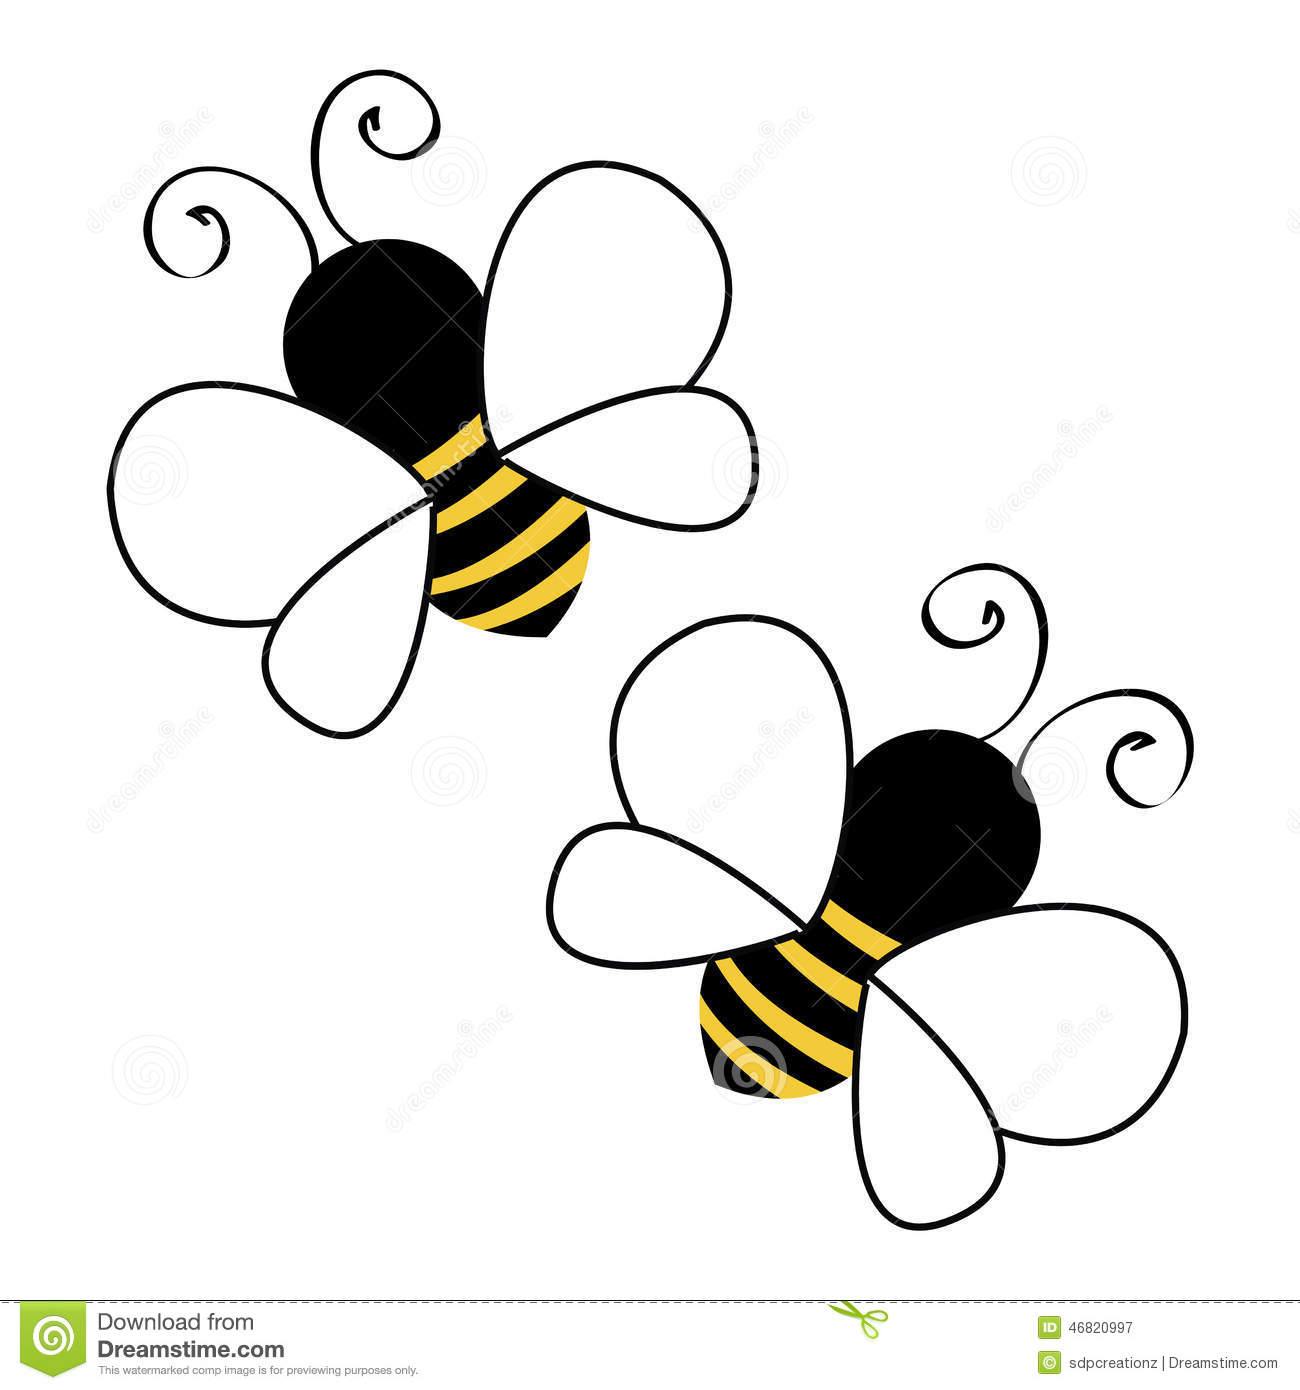 Stock Illustration Two Bees Flying Background Illustration Image46820997 besides Elegance 20 20clipart 20curly 20line besides Zig Zag Sewing Machine Embroidery 467588 moreover Japanese Icons Set 23105 likewise Bee Flying Stripes Wings Insect 45802. on vector flower graphics